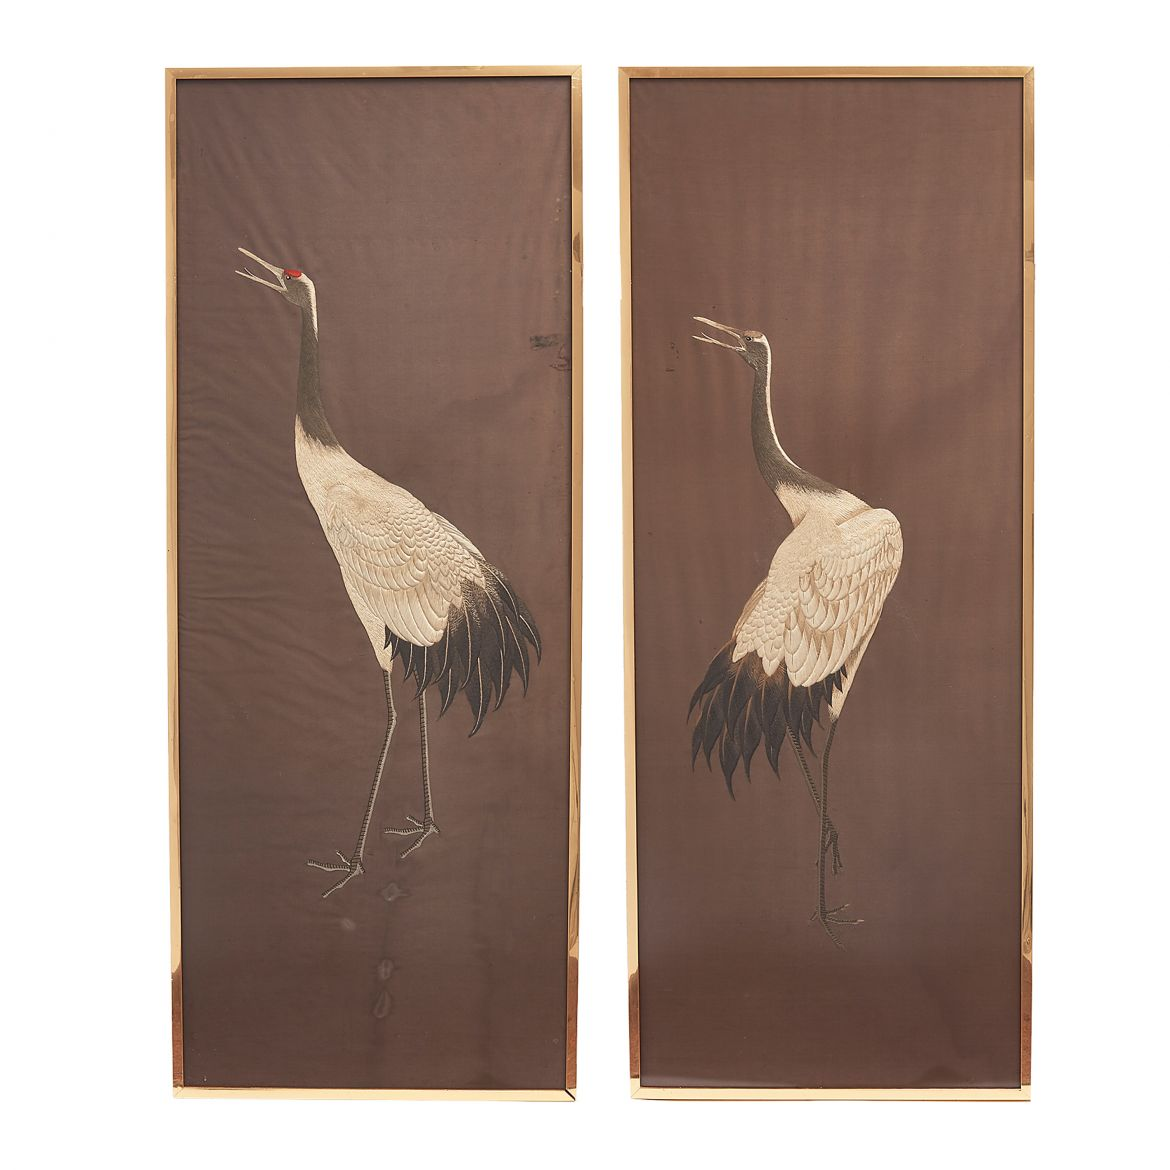 Japanese Embroidered Panels